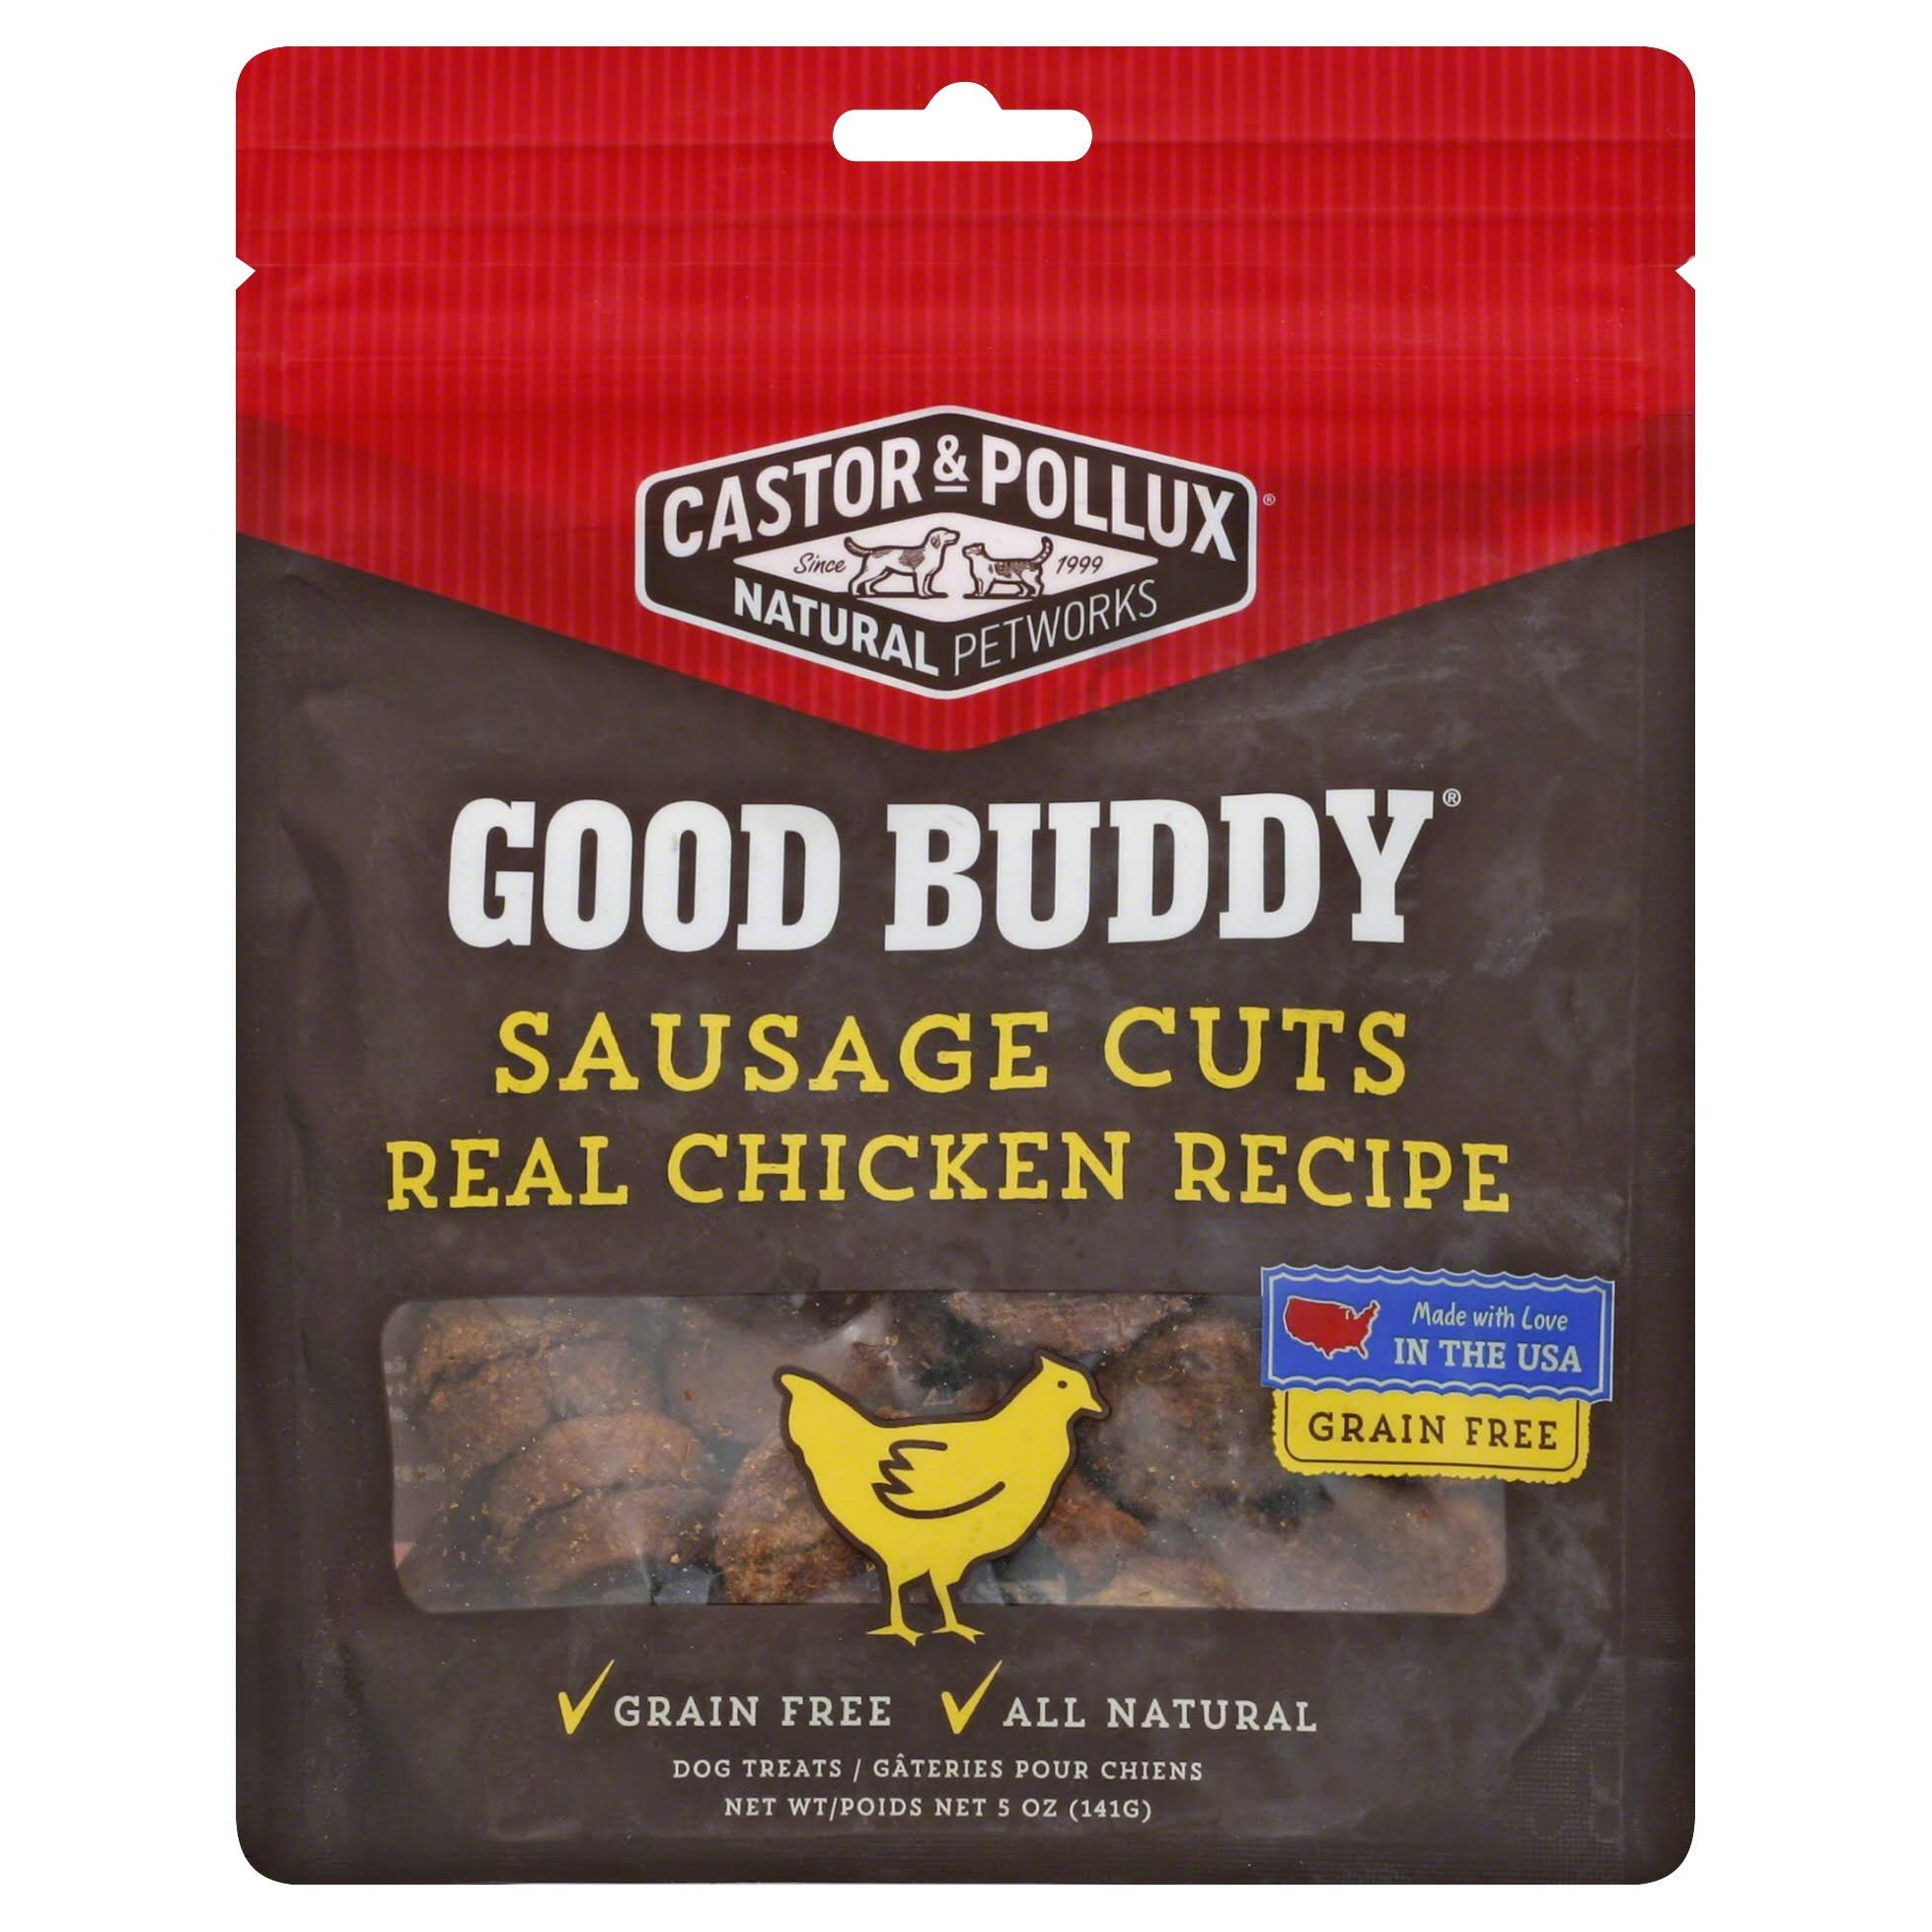 Castor & Pollux Good Buddy Sausage Cuts Real Chicken Recipe Pet Snacks - 5oz, Pack of 6